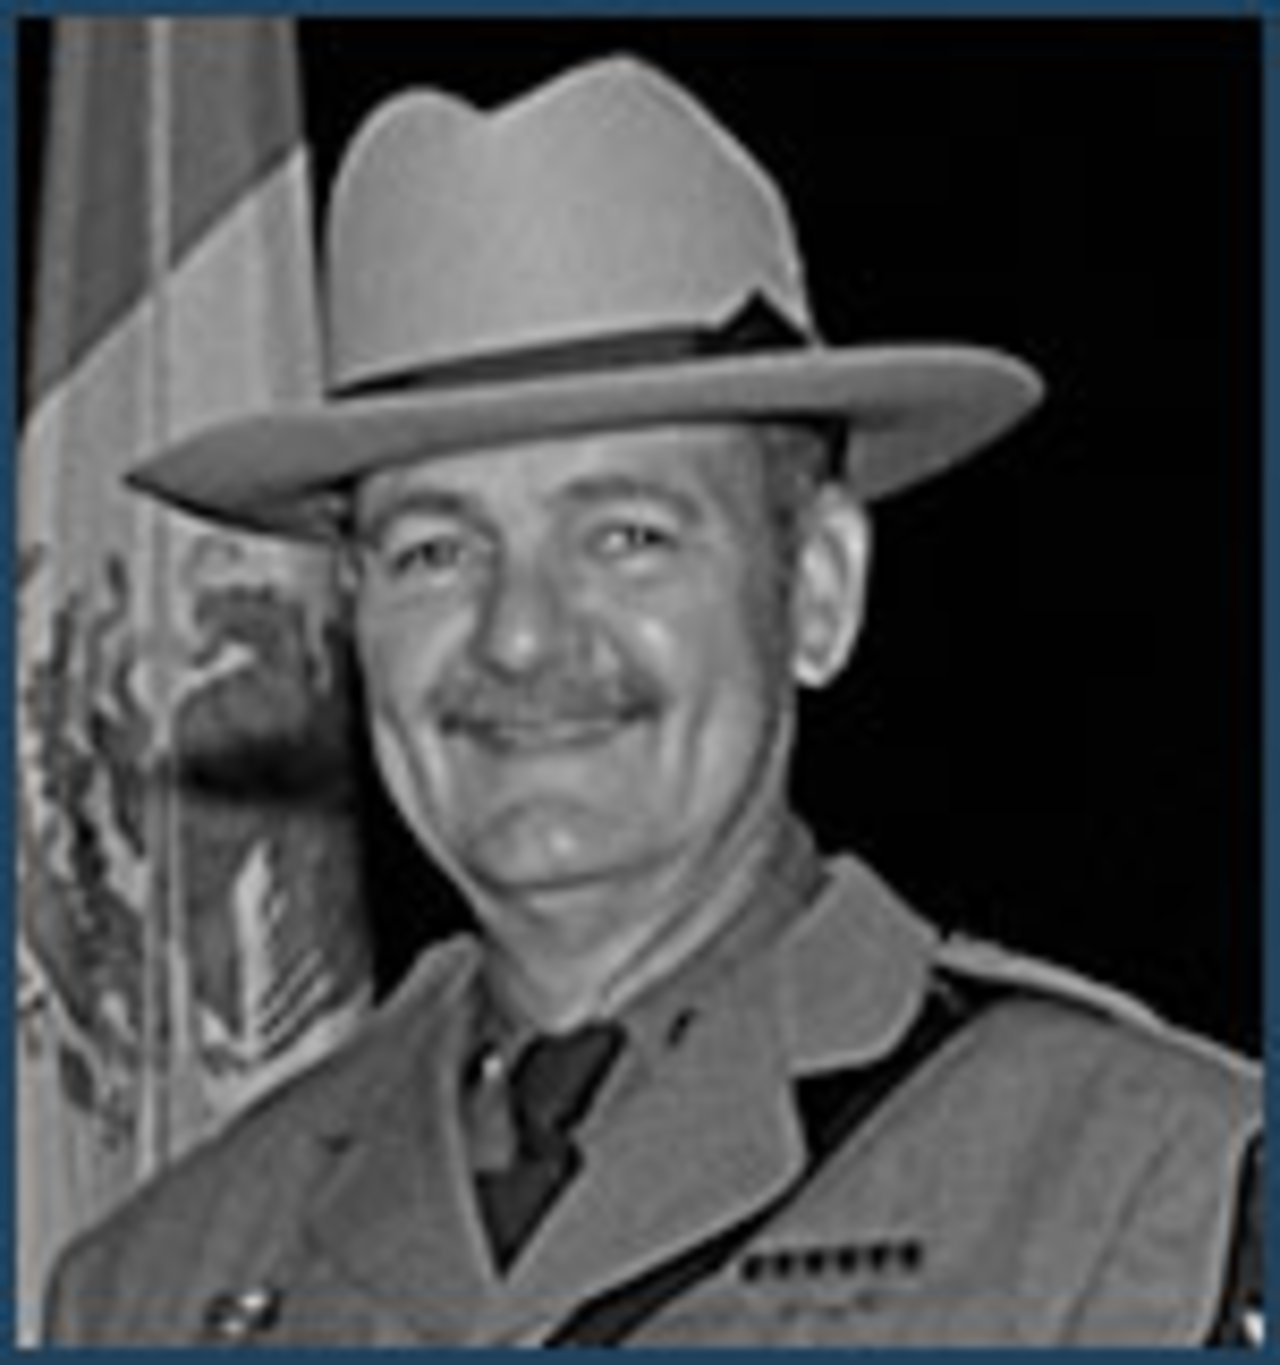 "ooper William P. Keane, died at the age of 56 on August 23, 2013. Trooper Keane, a member of the Troop ""A"" Commercial Vehicle Enforcement Unit, suffered a fatal heart attack while participating in the North American Inspectors' Challenge in Salt Lake City, Utah.  Trooper Keane entered the Division on March 30, 1987, and was a 26 year veteran. He served in Troop ""A"" for his entire career."